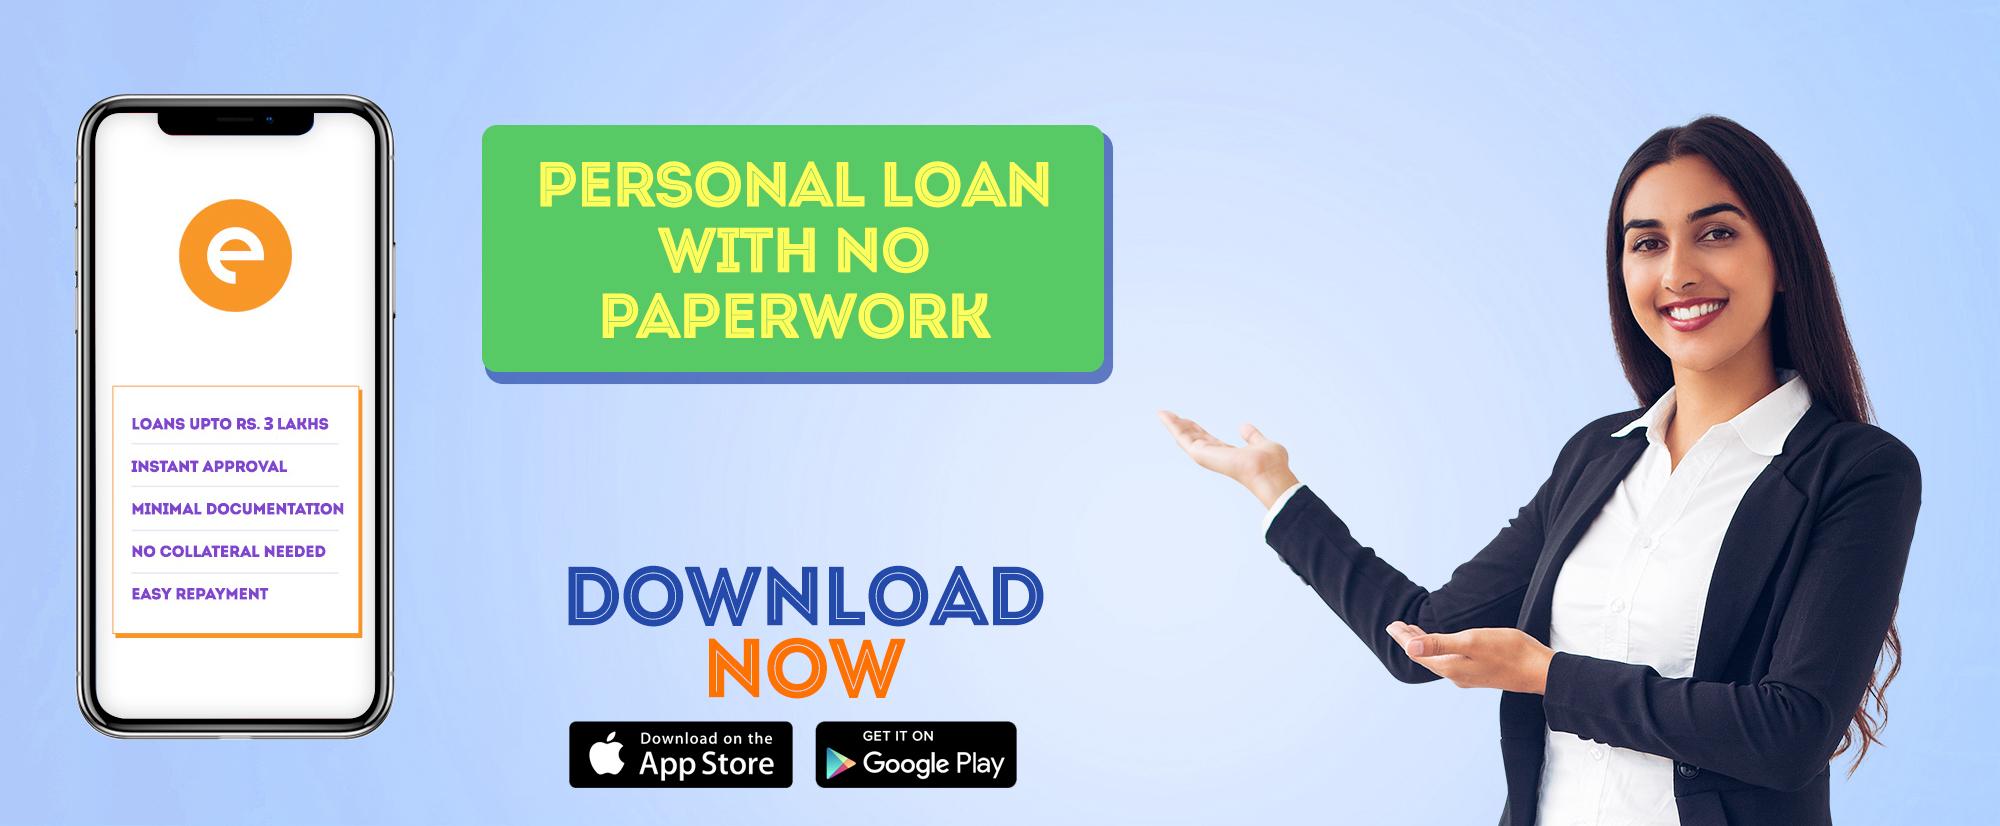 Get A Personal Loan With No Paperwork Easy Loan App Cashe